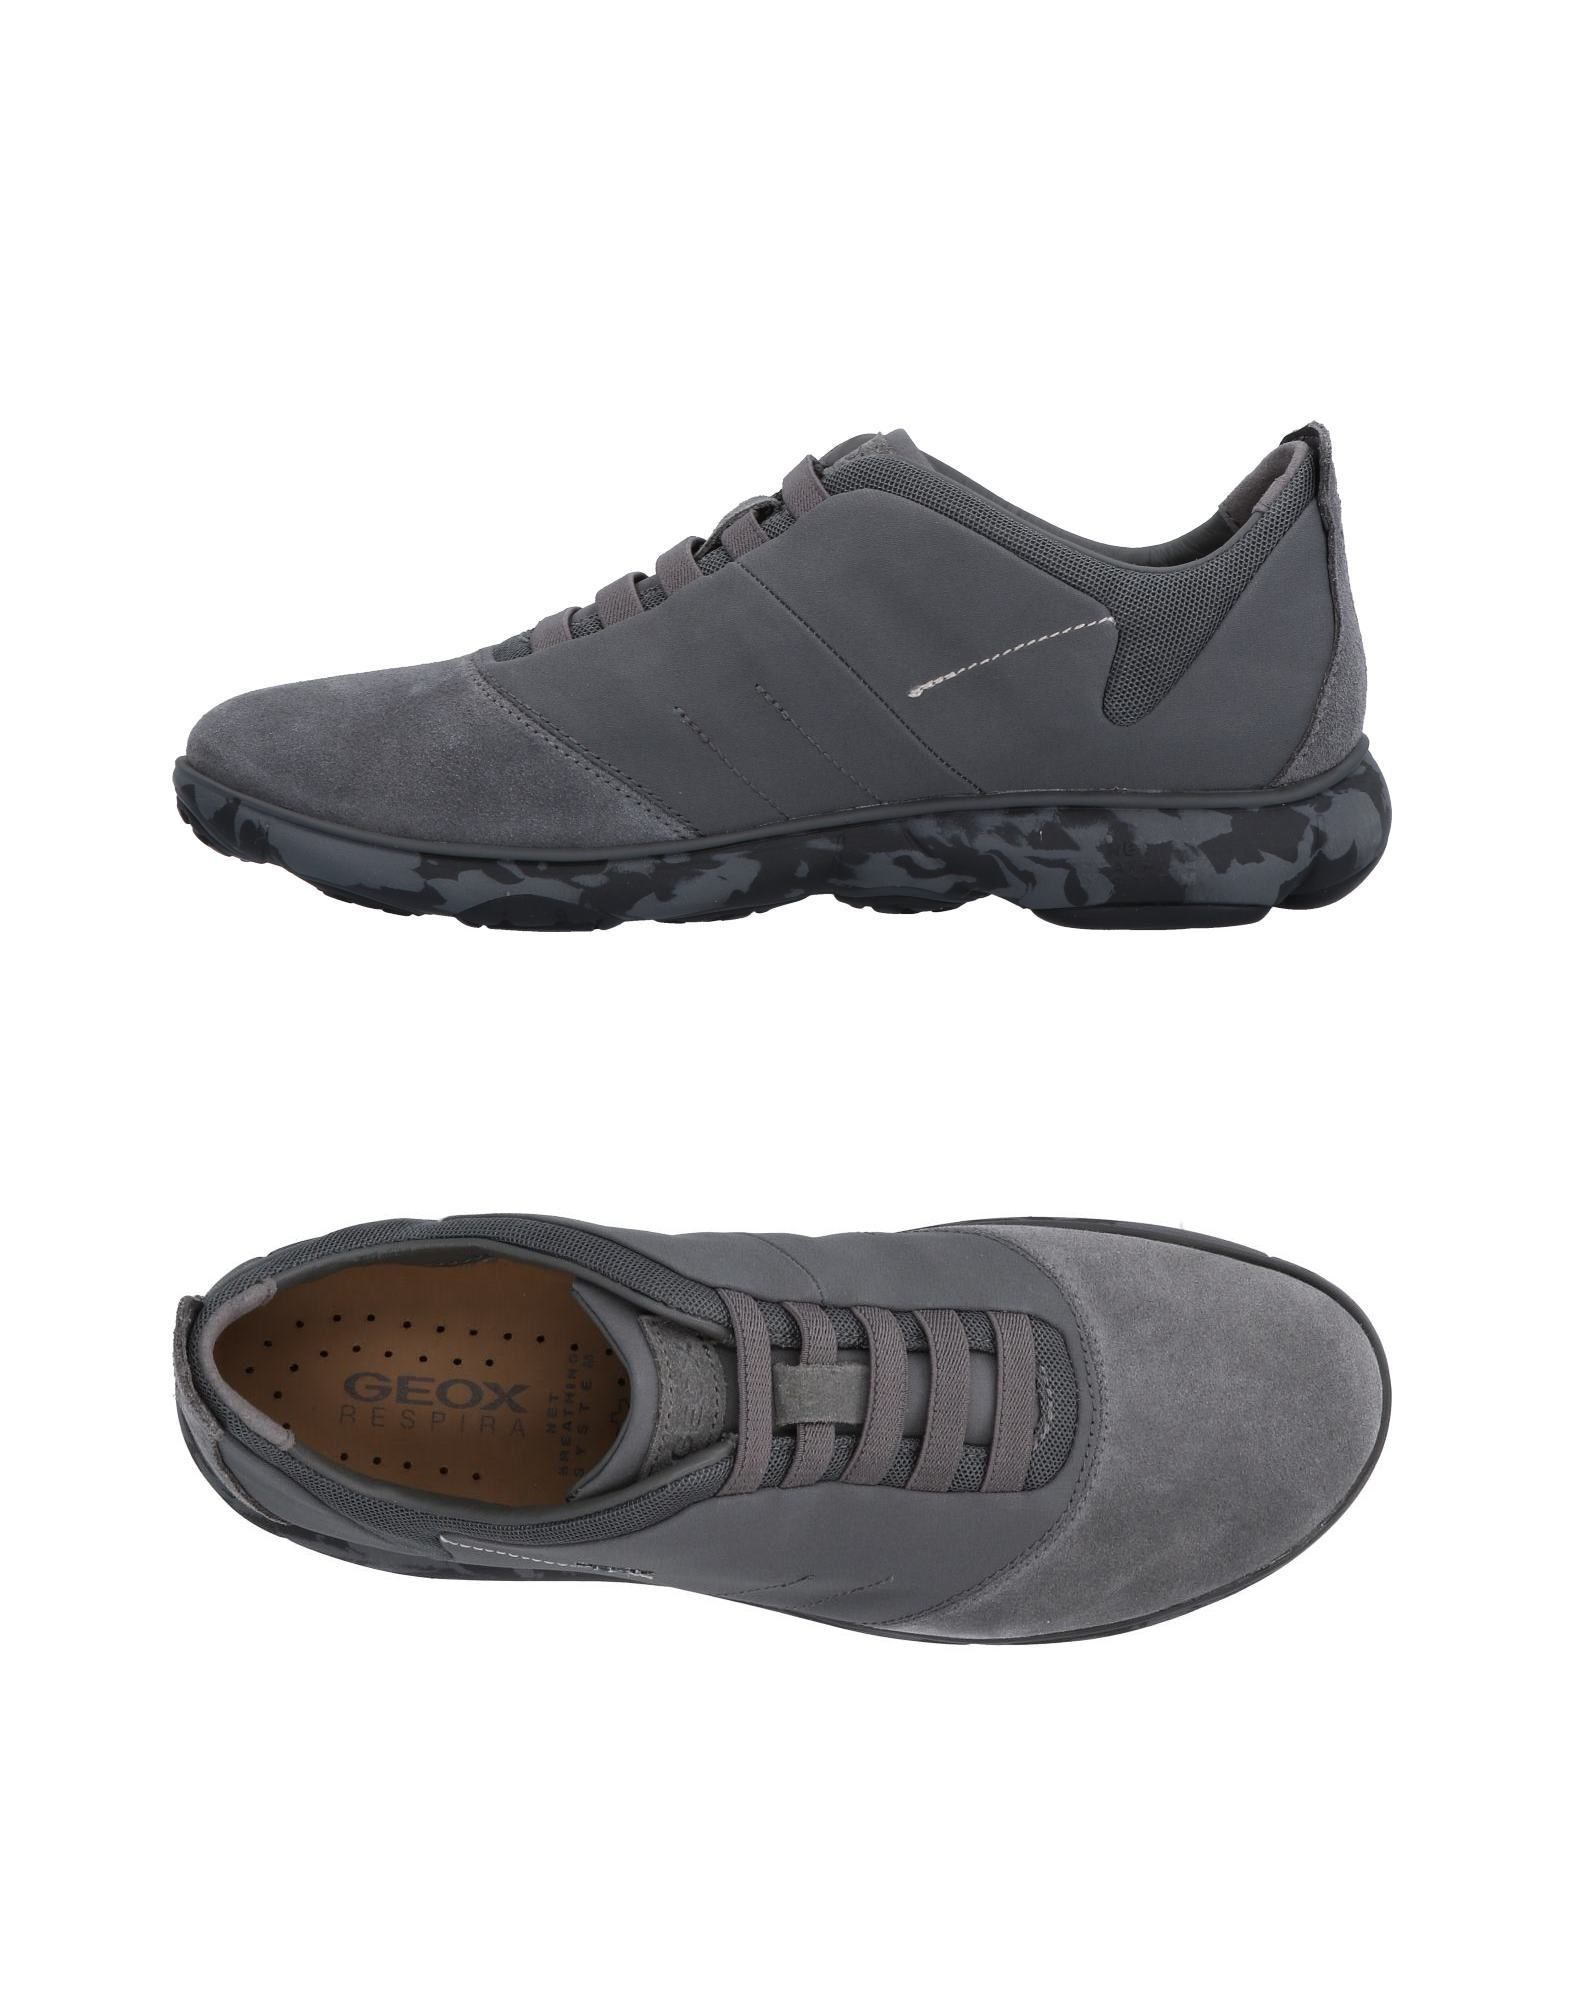 Sneakers Geox Homme - Sneakers Geox  Gris Chaussures casual sauvages